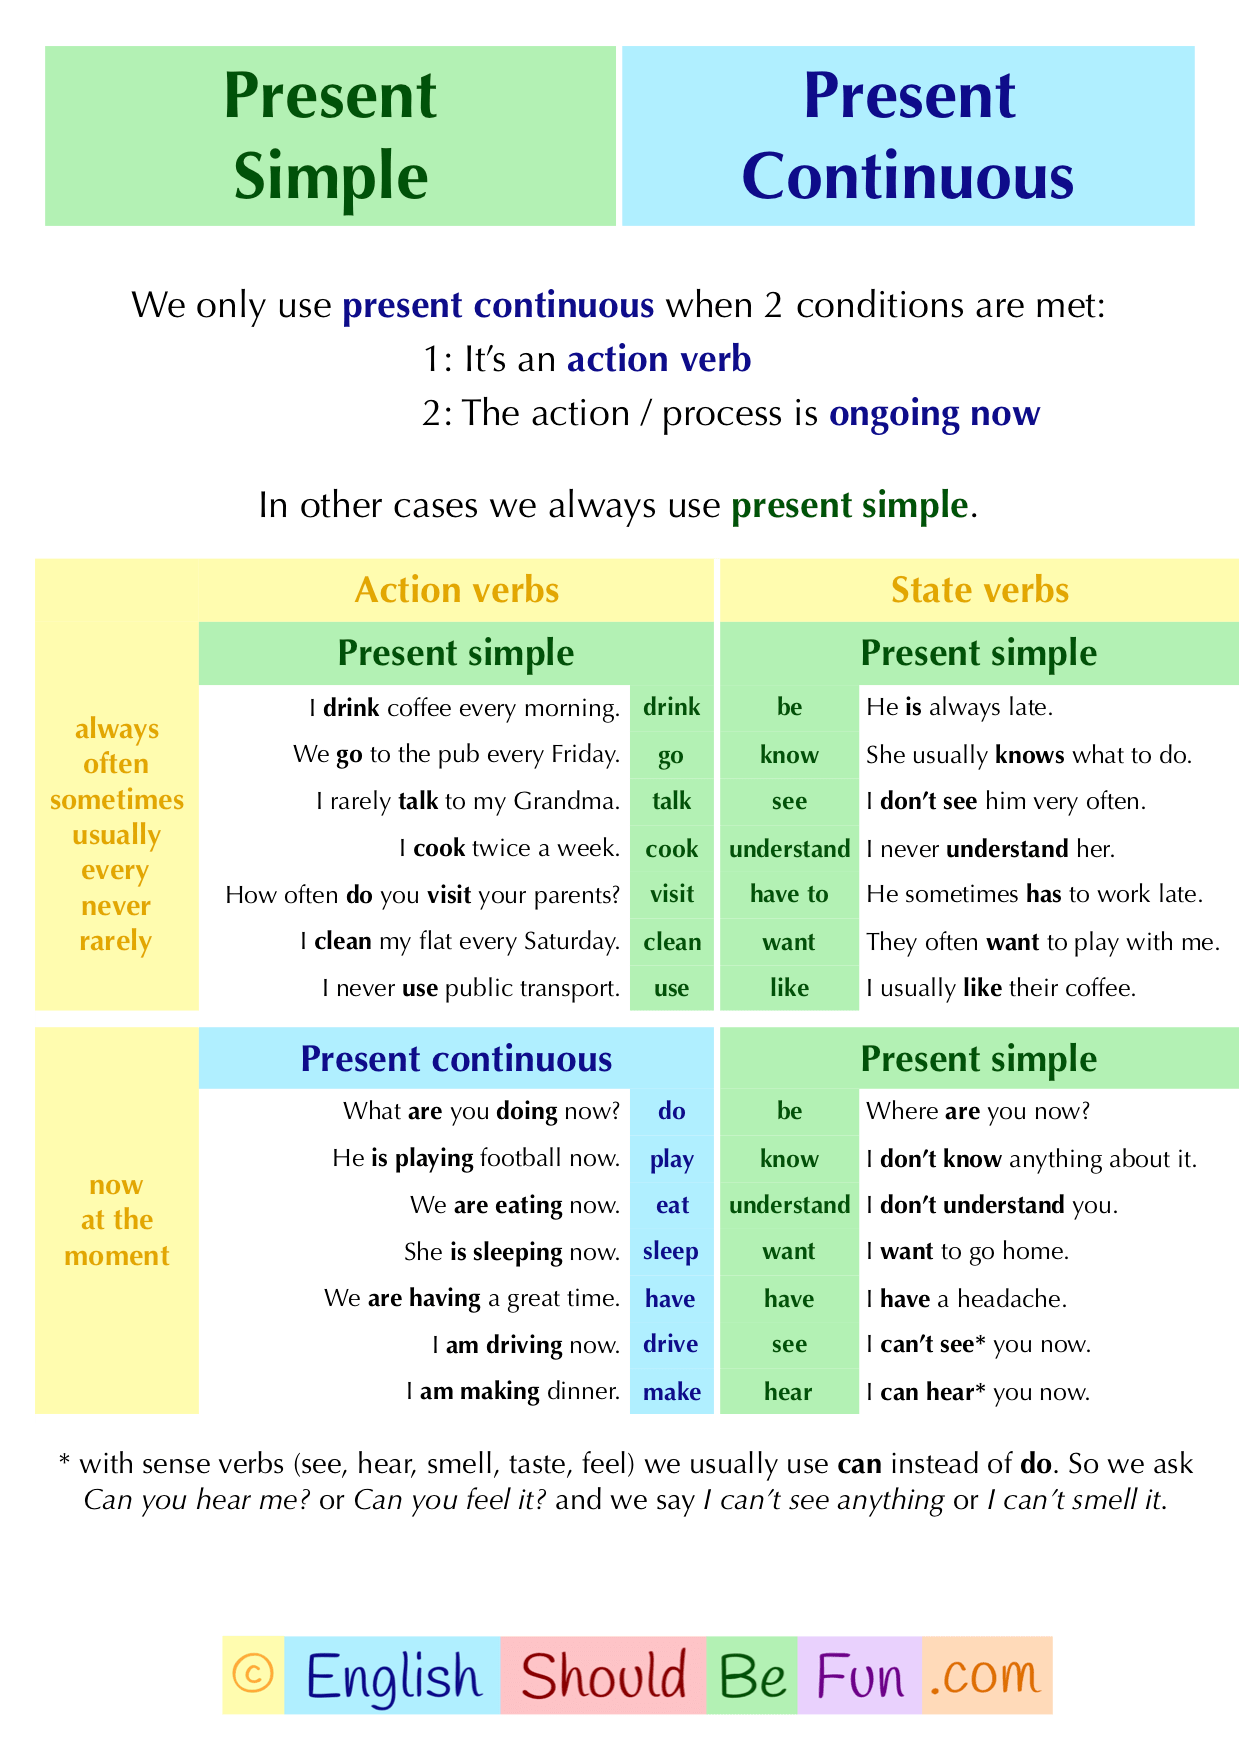 Present Simple Or Continuous English Should Be Fun